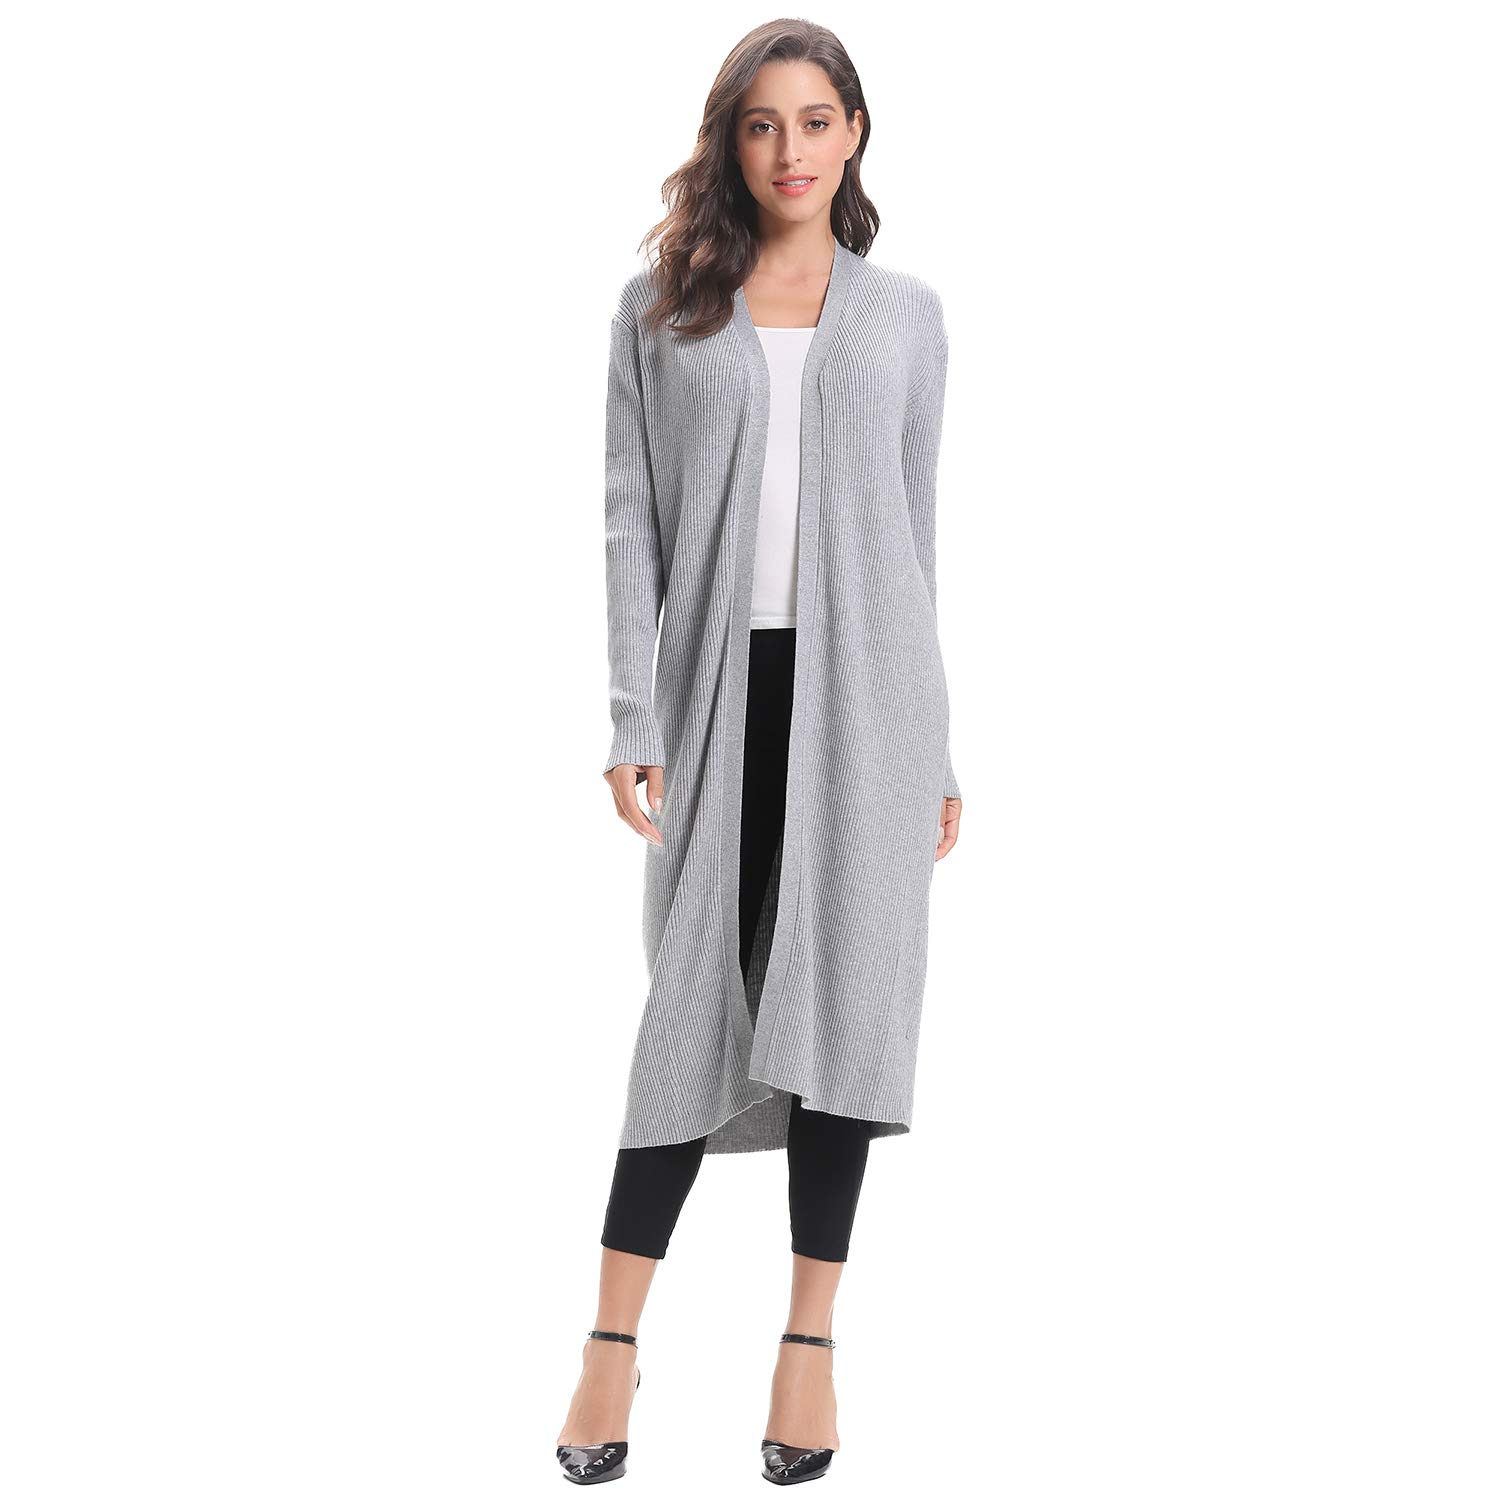 Luxspire Women's Cardigan Sweater, Long Casual Open Front Coat, Soft Lightweight Long Sleeve Knit Cardigan